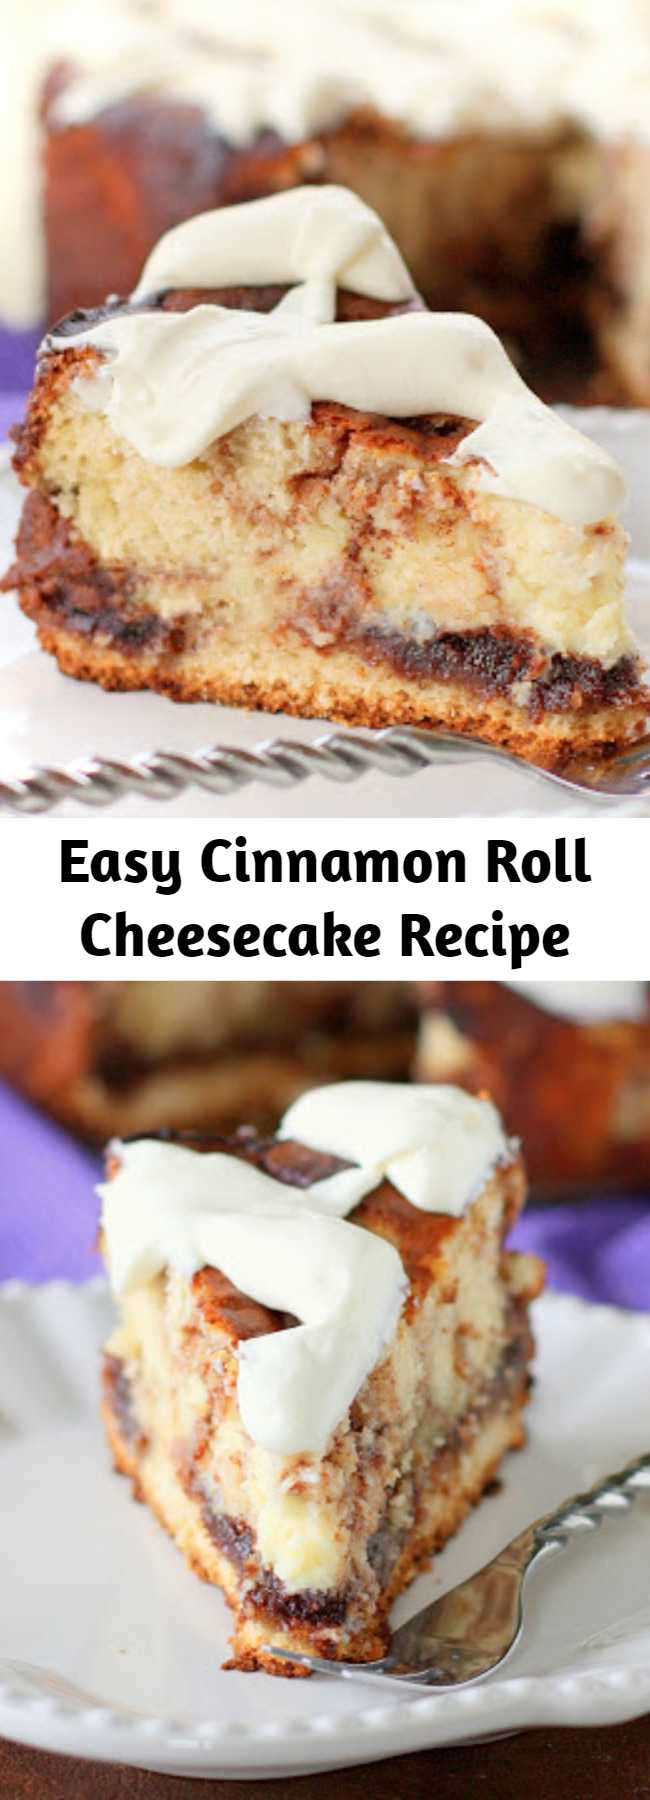 Easy Cinnamon Roll Cheesecake Recipe - This Cinnamon Roll Cheesecake is cheesecake with cinnamon roll dough base and buttery cinnamon swirled throughout. The top is frosted with thick cream cheese frosting.